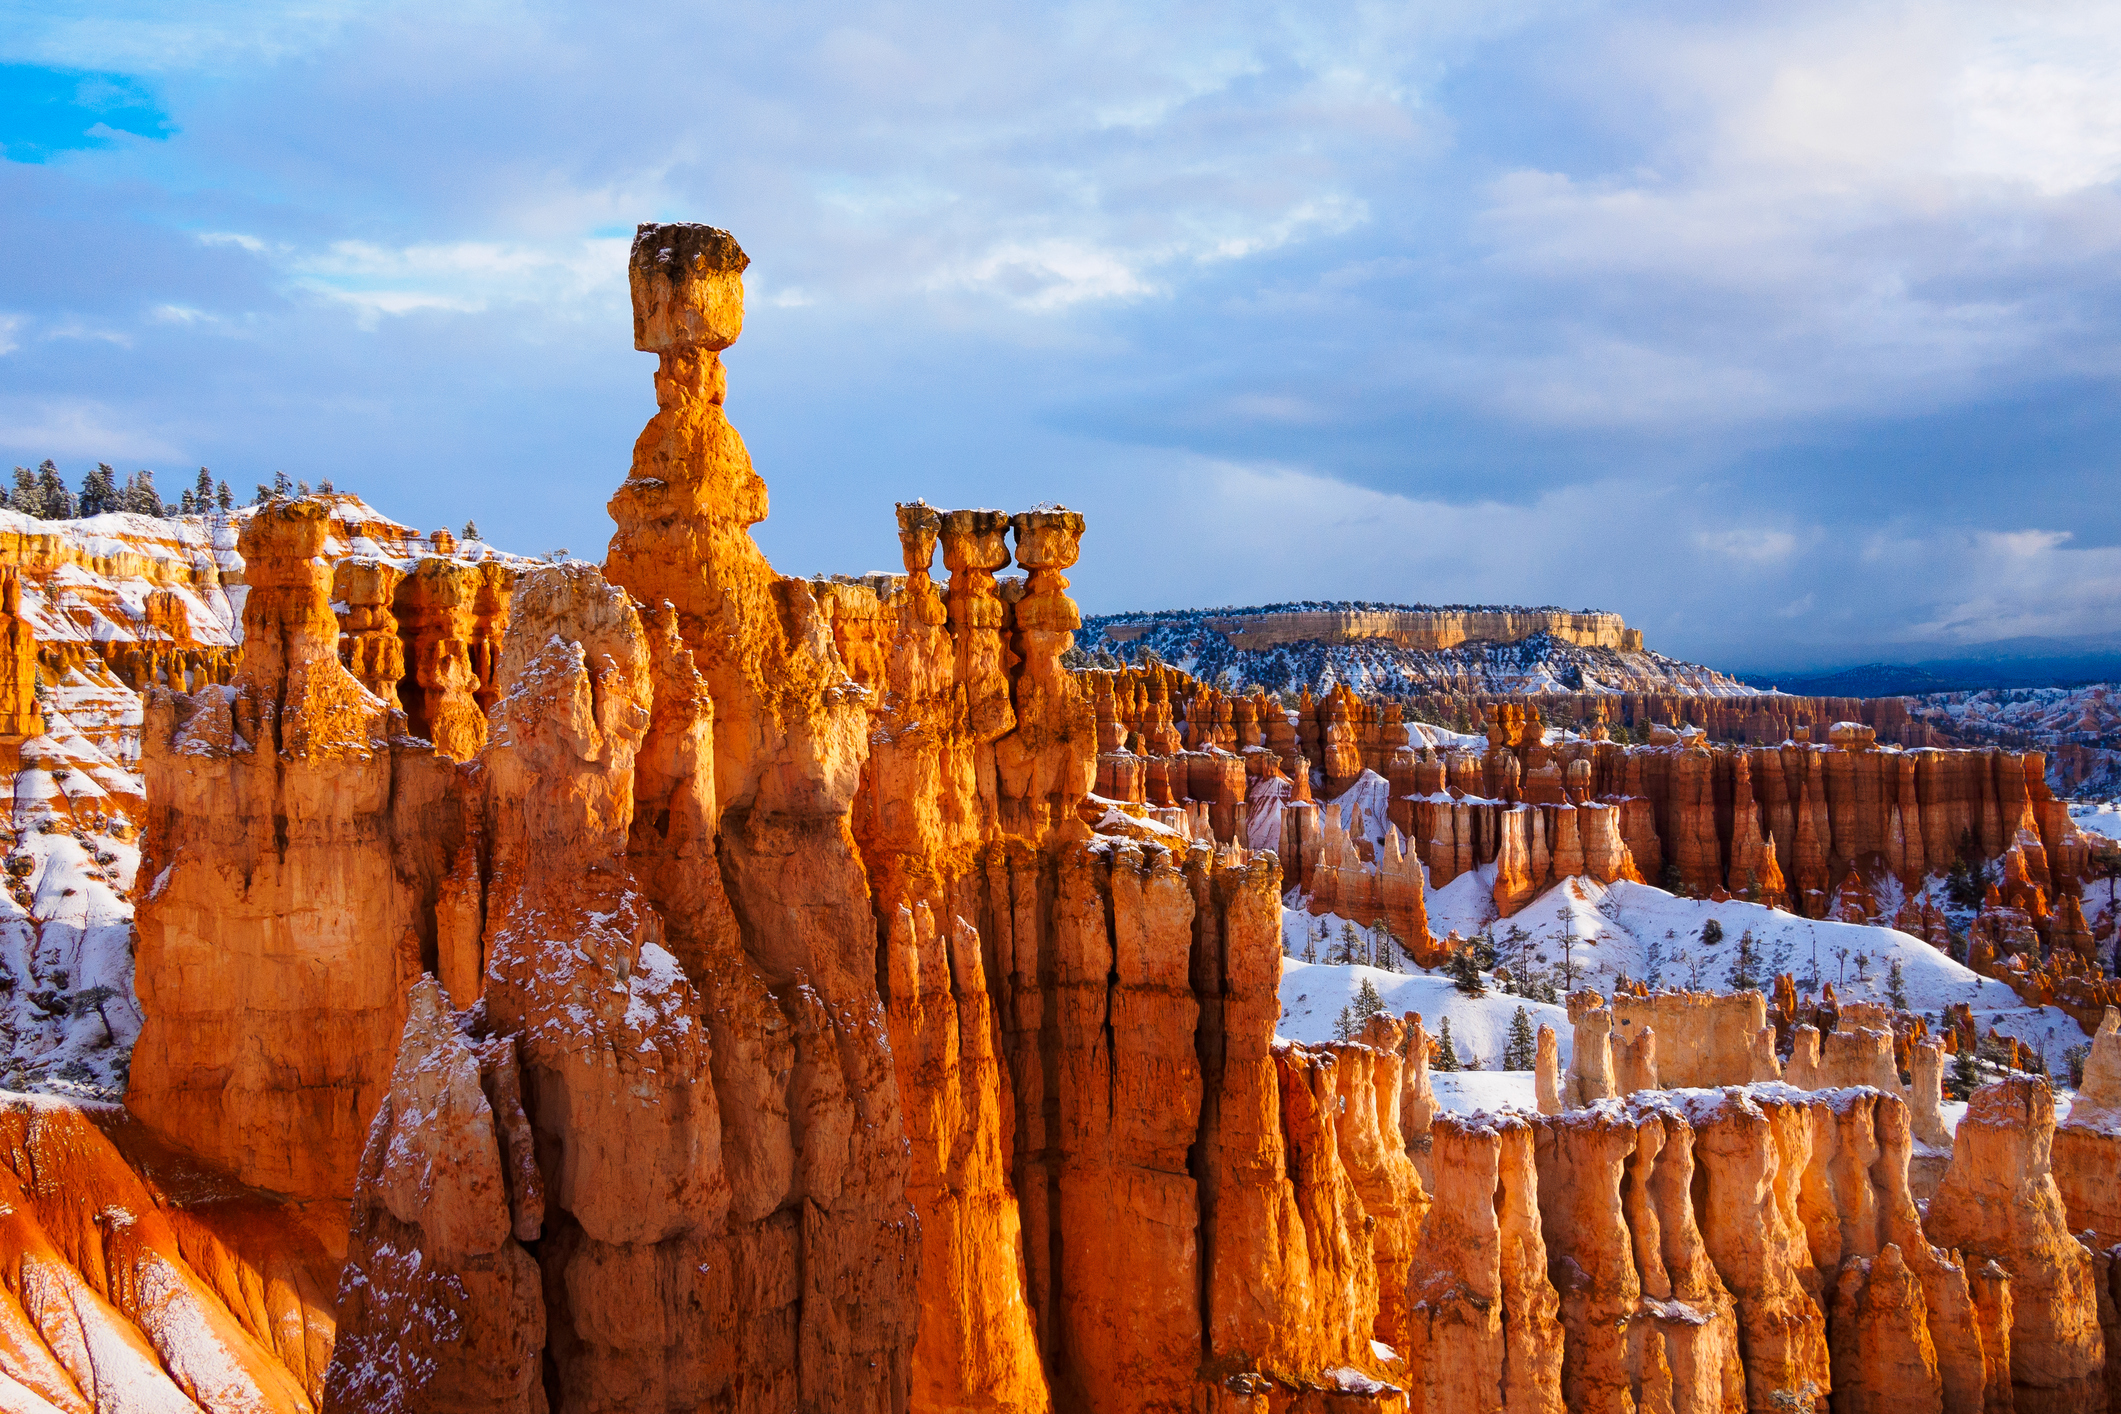 Participate in tons of outdoor activities during the Bryce Canyon Winter Festival.